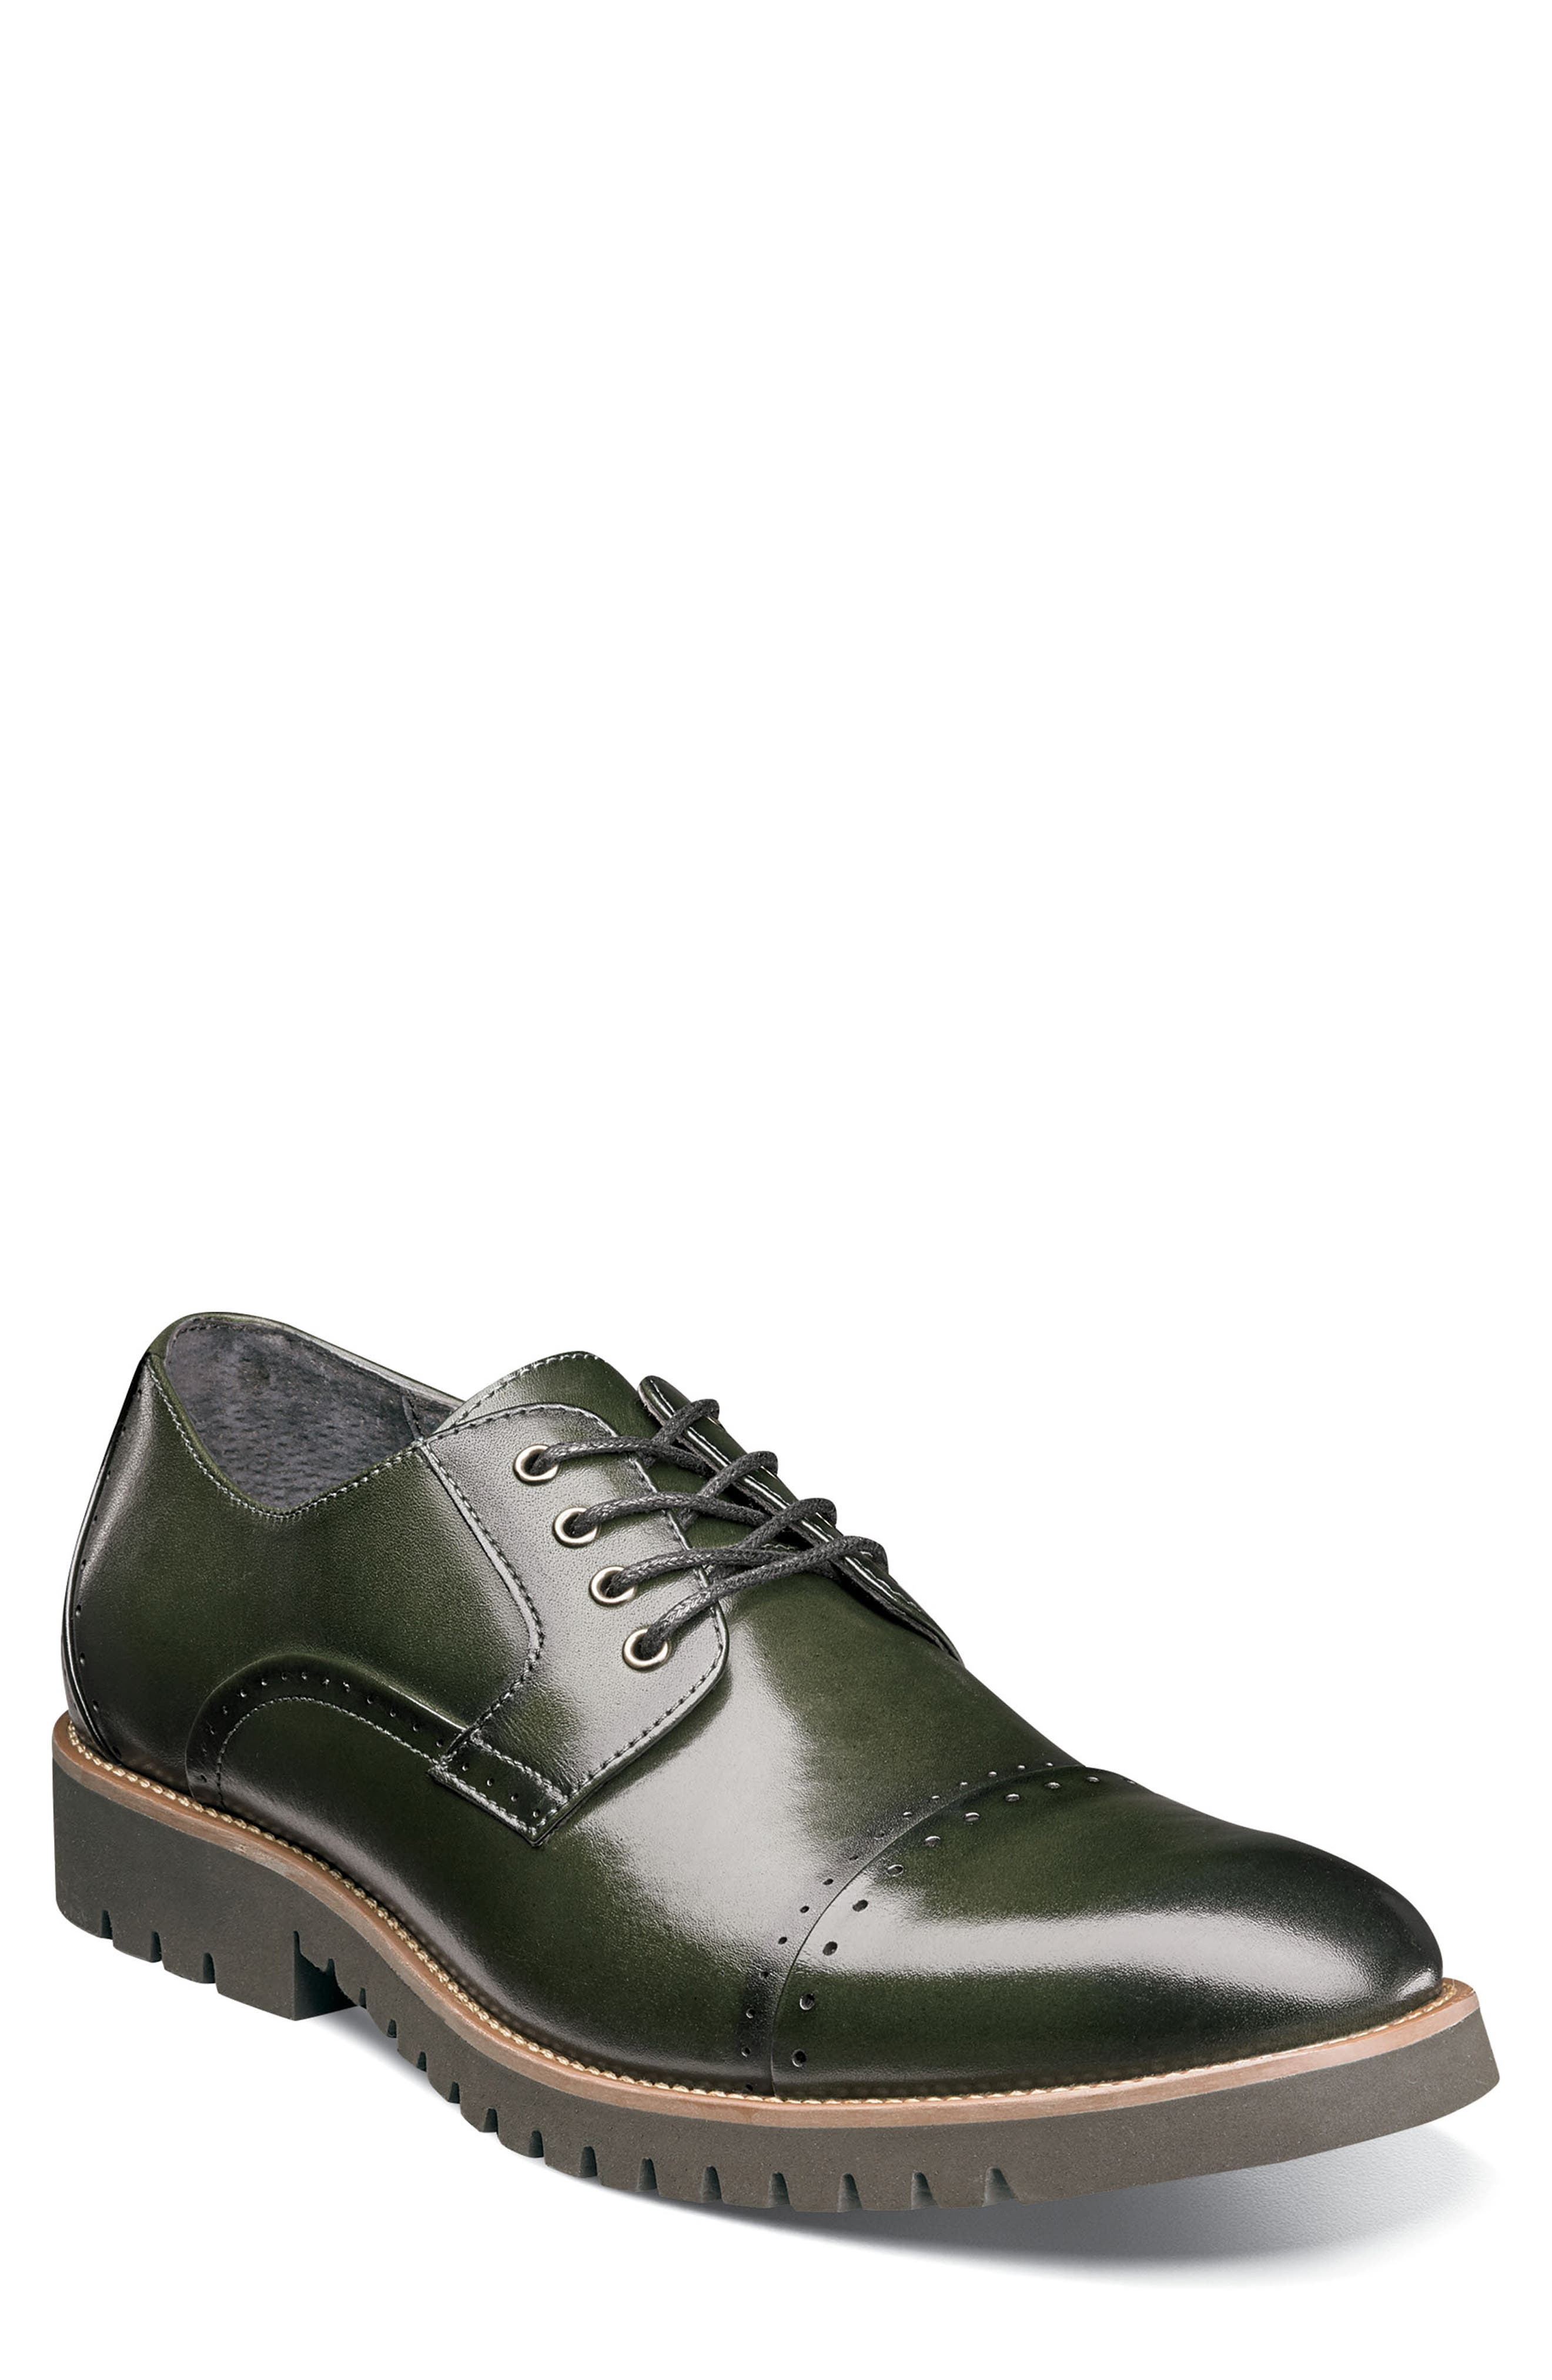 Barcliff Cap Toe Derby,                         Main,                         color, CARGO GREEN LEATHER